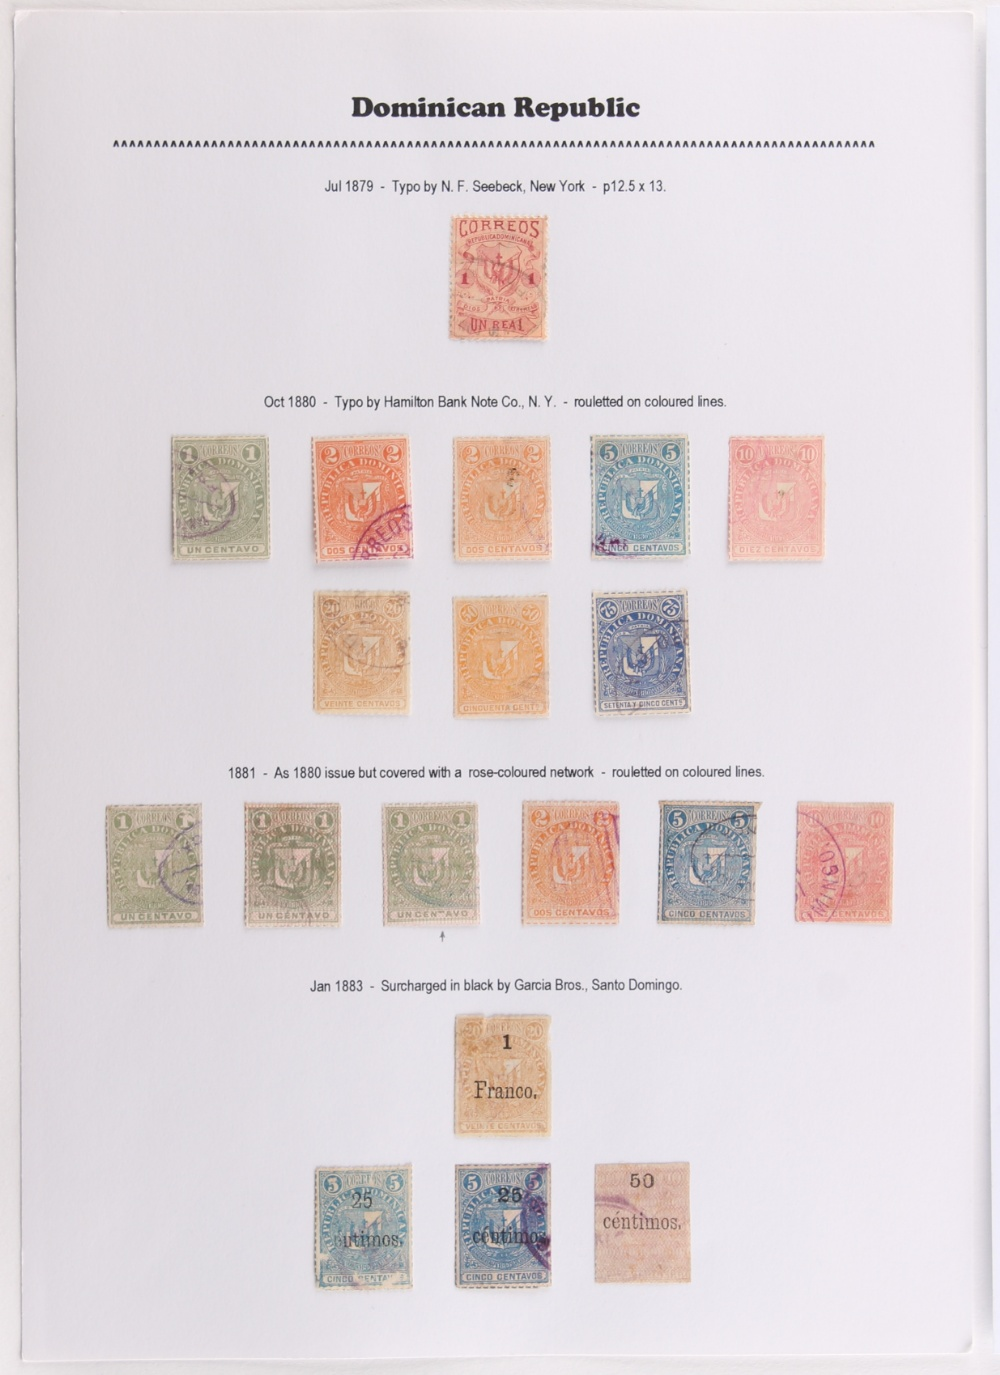 The Basil Lewis (1927-2019) collection of stamps - Latin America on pages with Chile including